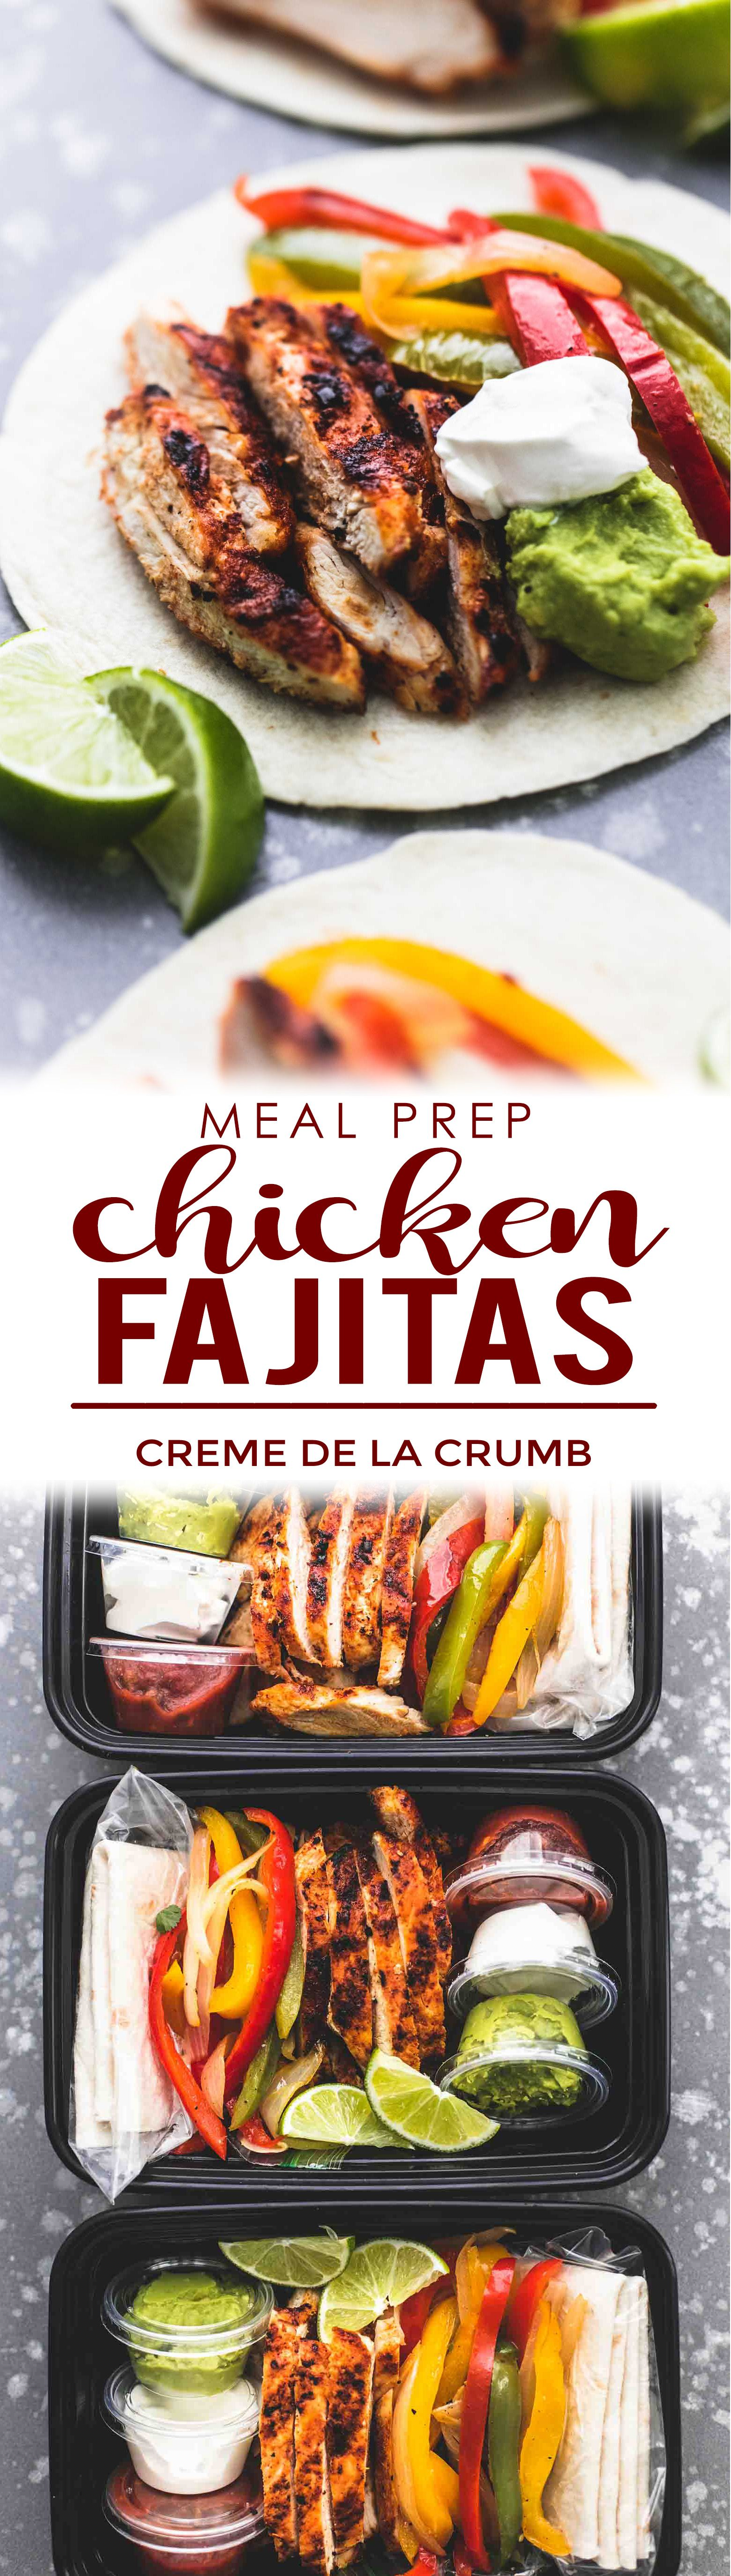 These Meal Prep Chicken Fajitas are the perfect solution for busy cooks who love big flavors! These skillet, oven baked, or grill chicken fajitas are easy to make in about 30 minutes and are a great make ahead option for meals throughout the week. | lecremedelacrumb.com #mealprep #easydinnerrecipes #healthychickenrecipes #recipeforchickenfajitas